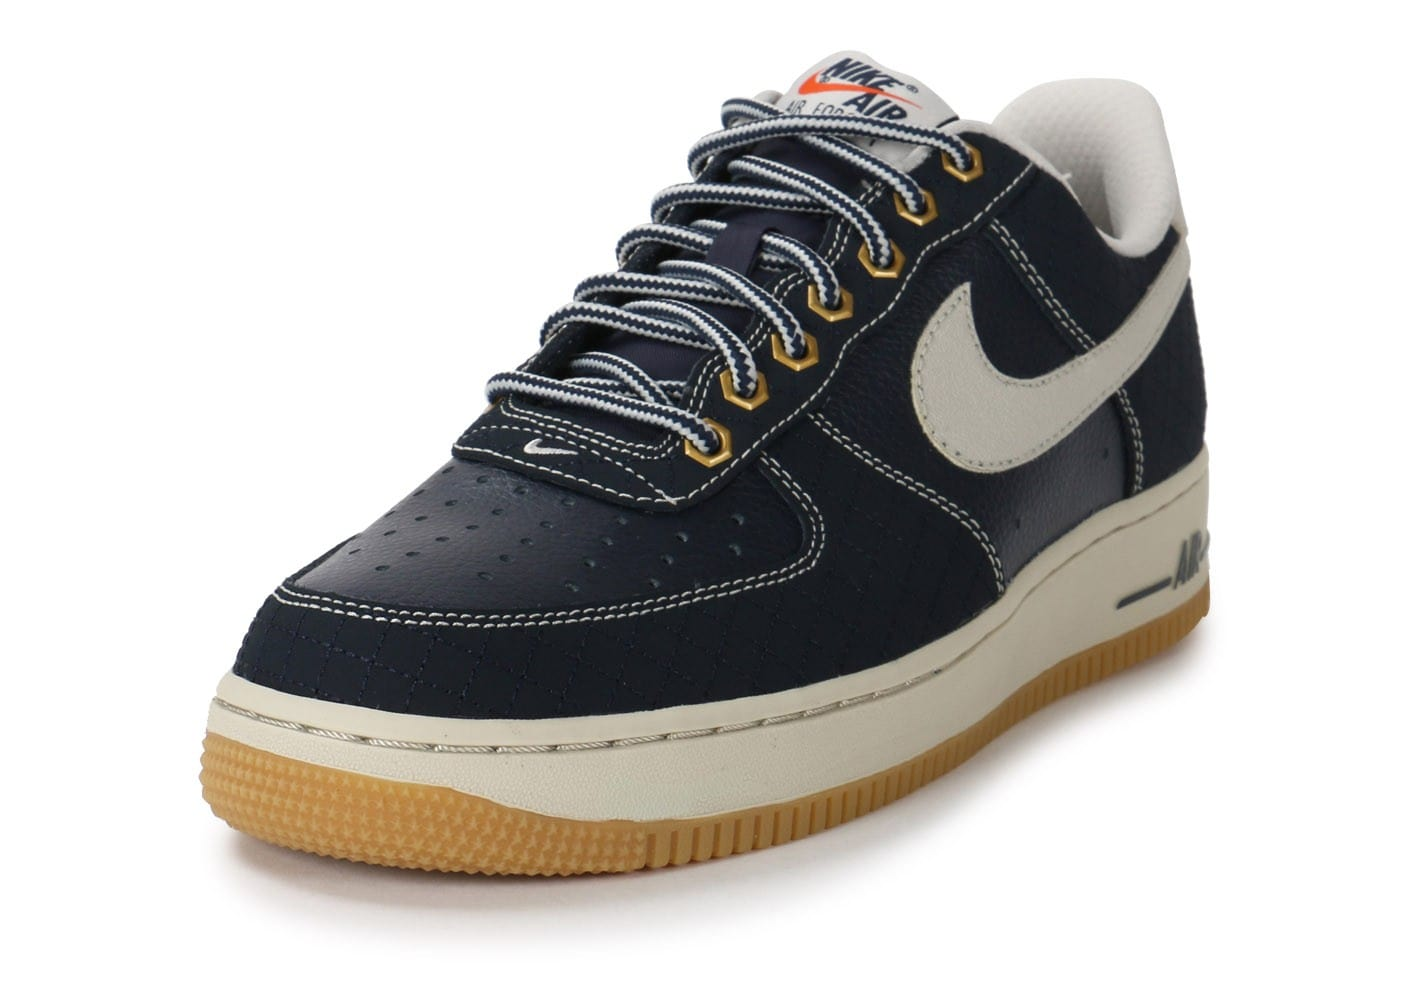 panier nike air force 1 low. Black Bedroom Furniture Sets. Home Design Ideas